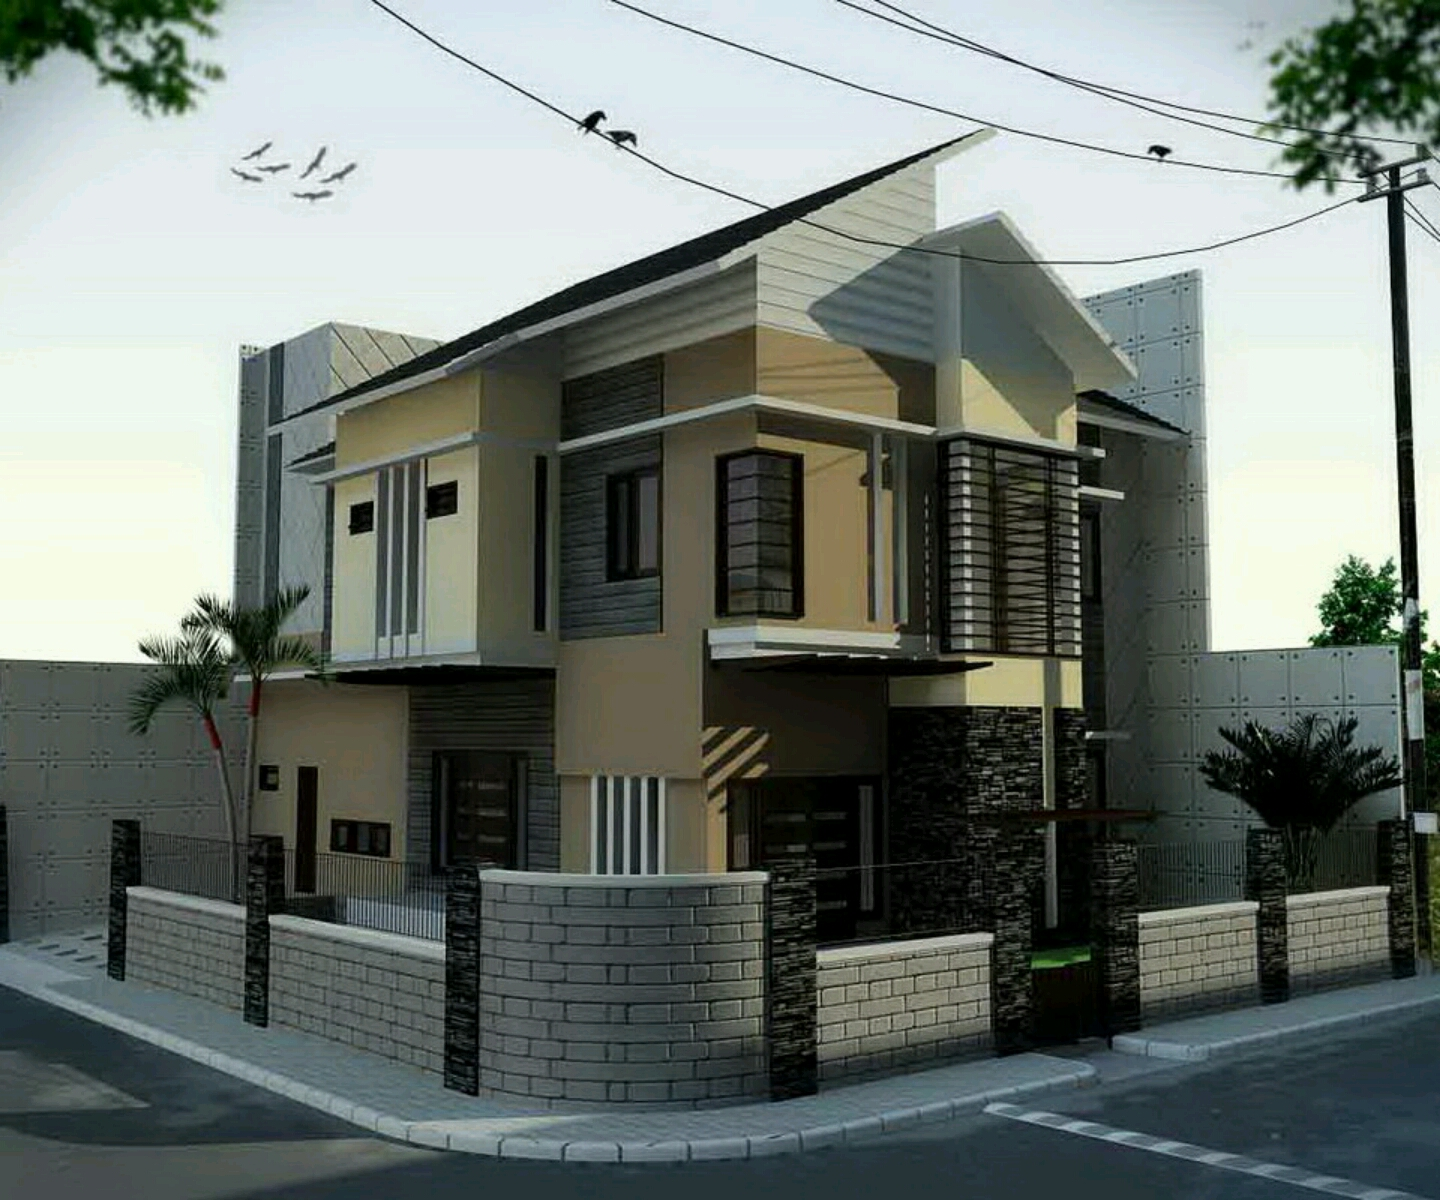 New home designs latest modern homes designs front views for Modern house front view design